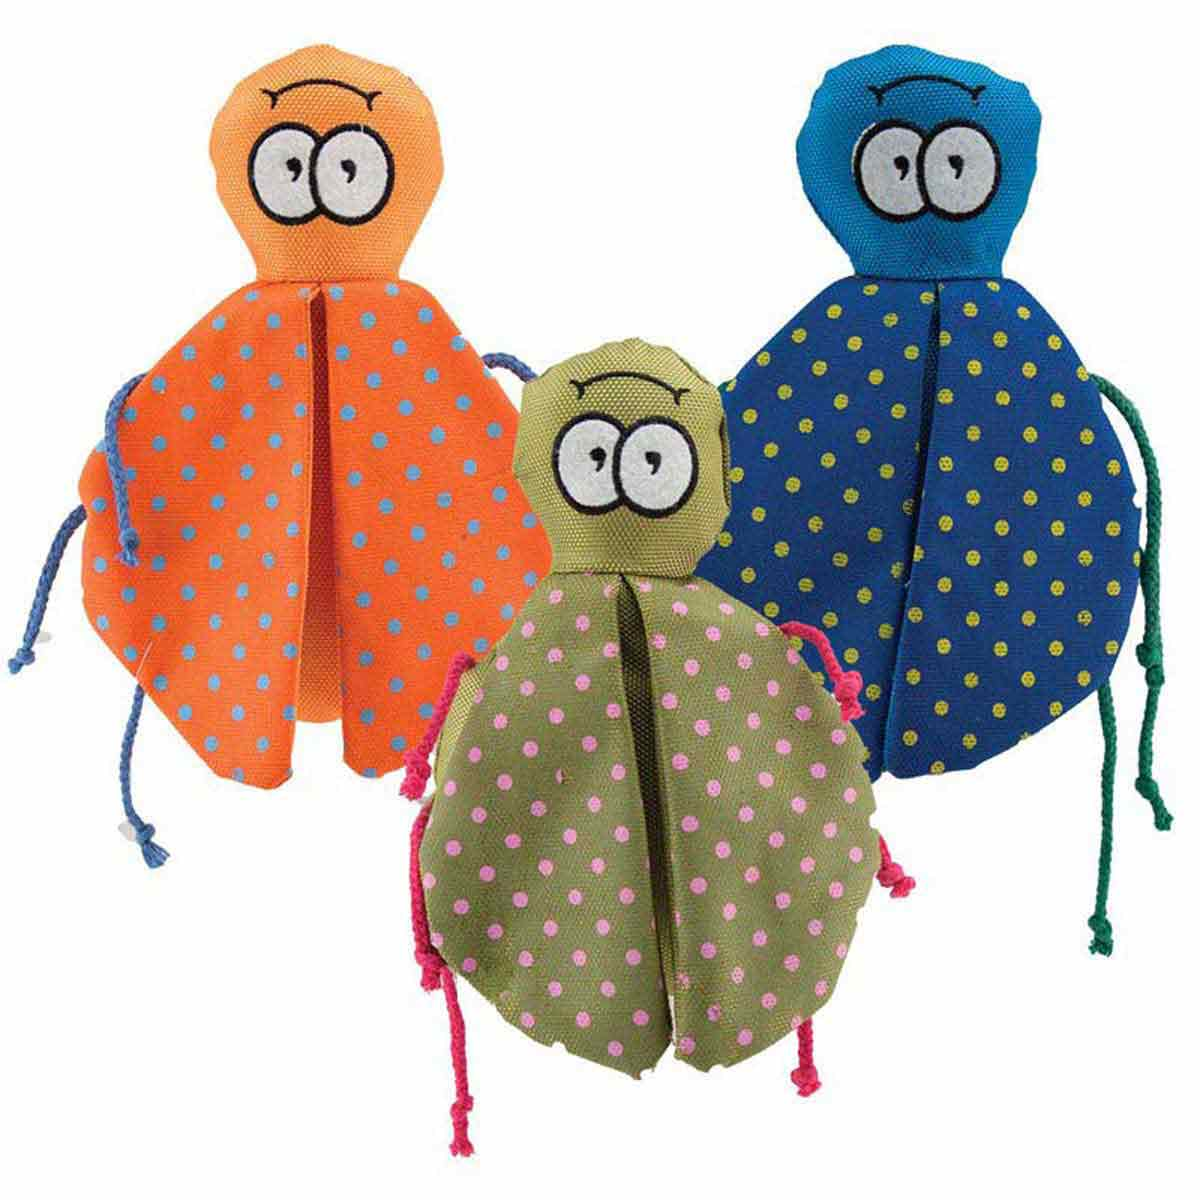 Various Colors - Dawgeee Toy Winged Beetle - Toys for Dogs